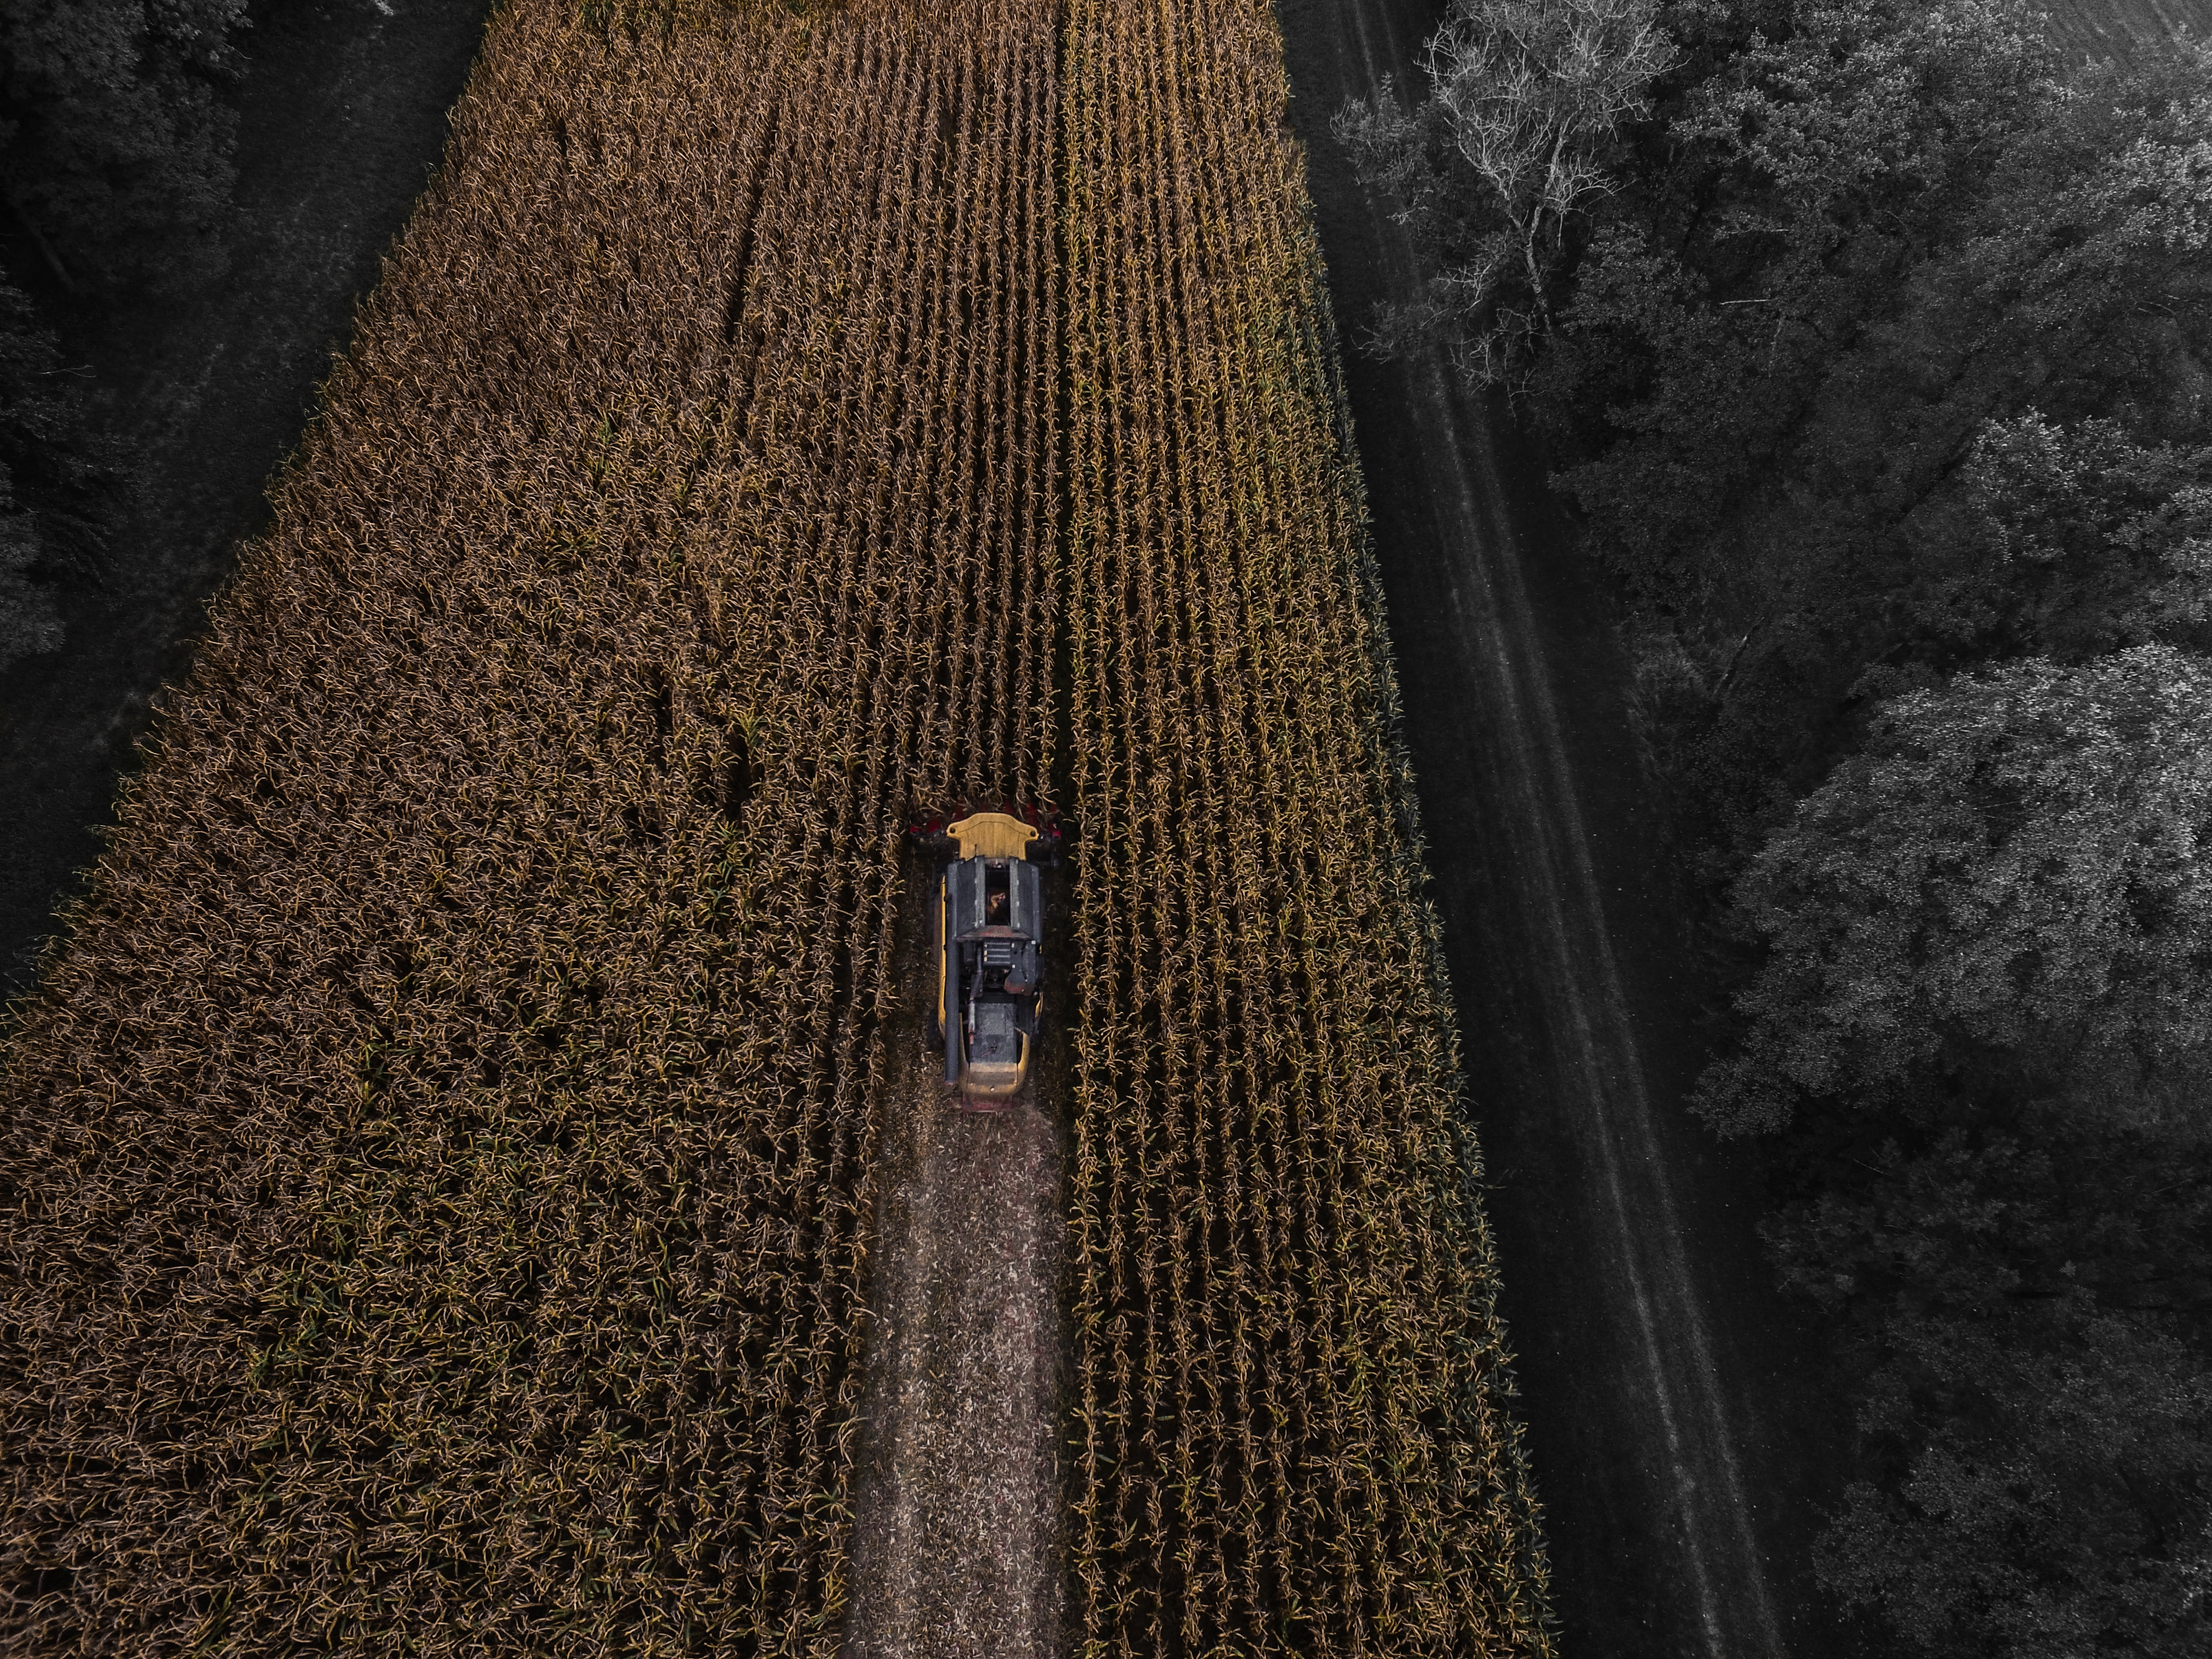 yellow and black truck on field aerial photography